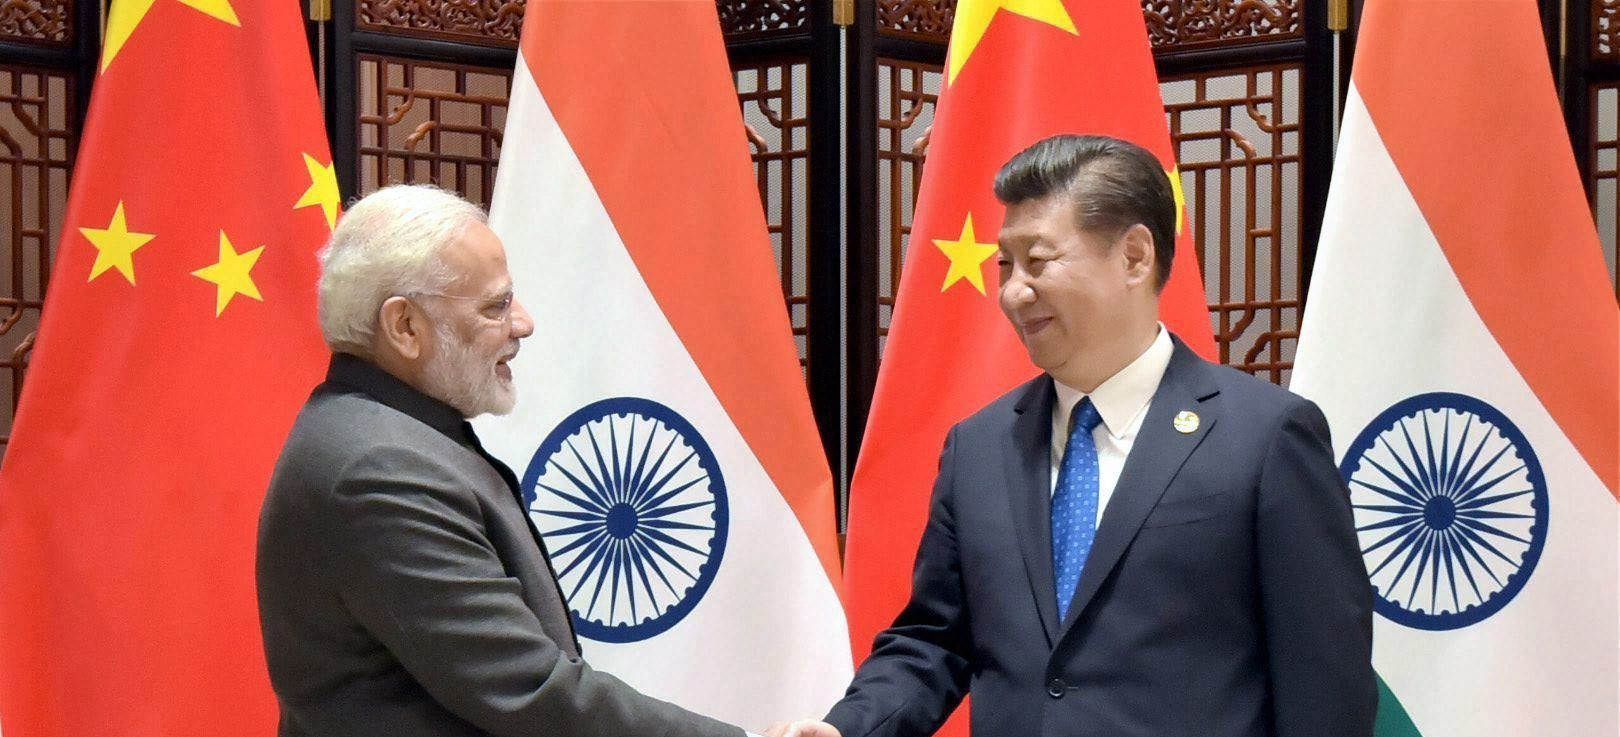 Modi to Visit China on April 27-28 for Summit Talks With President Xi Jinping